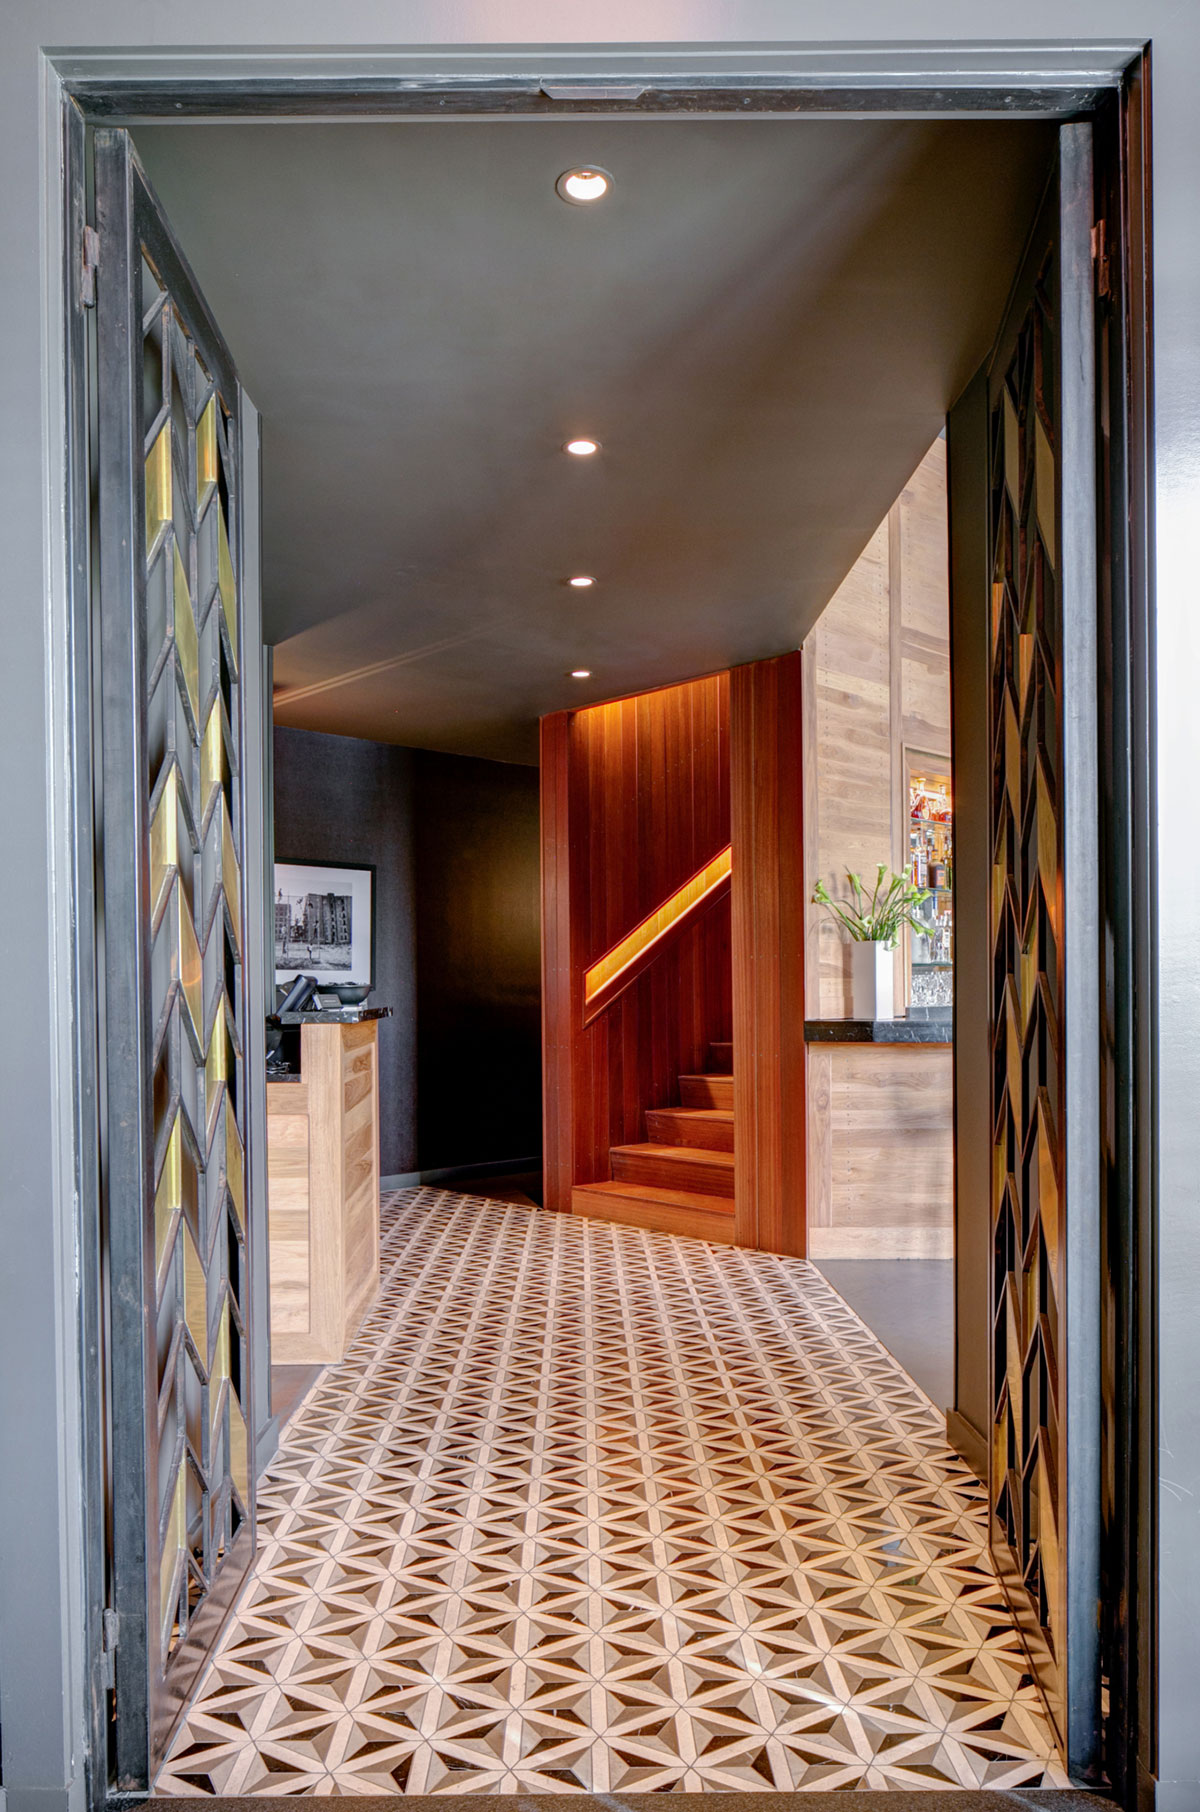 Entrance of the American Cut Bar & Grill project located at 495 Sylvan Avenue in Englewood Cliffs, New Jersey designed by the architecture studio Danny Forster & Architecture